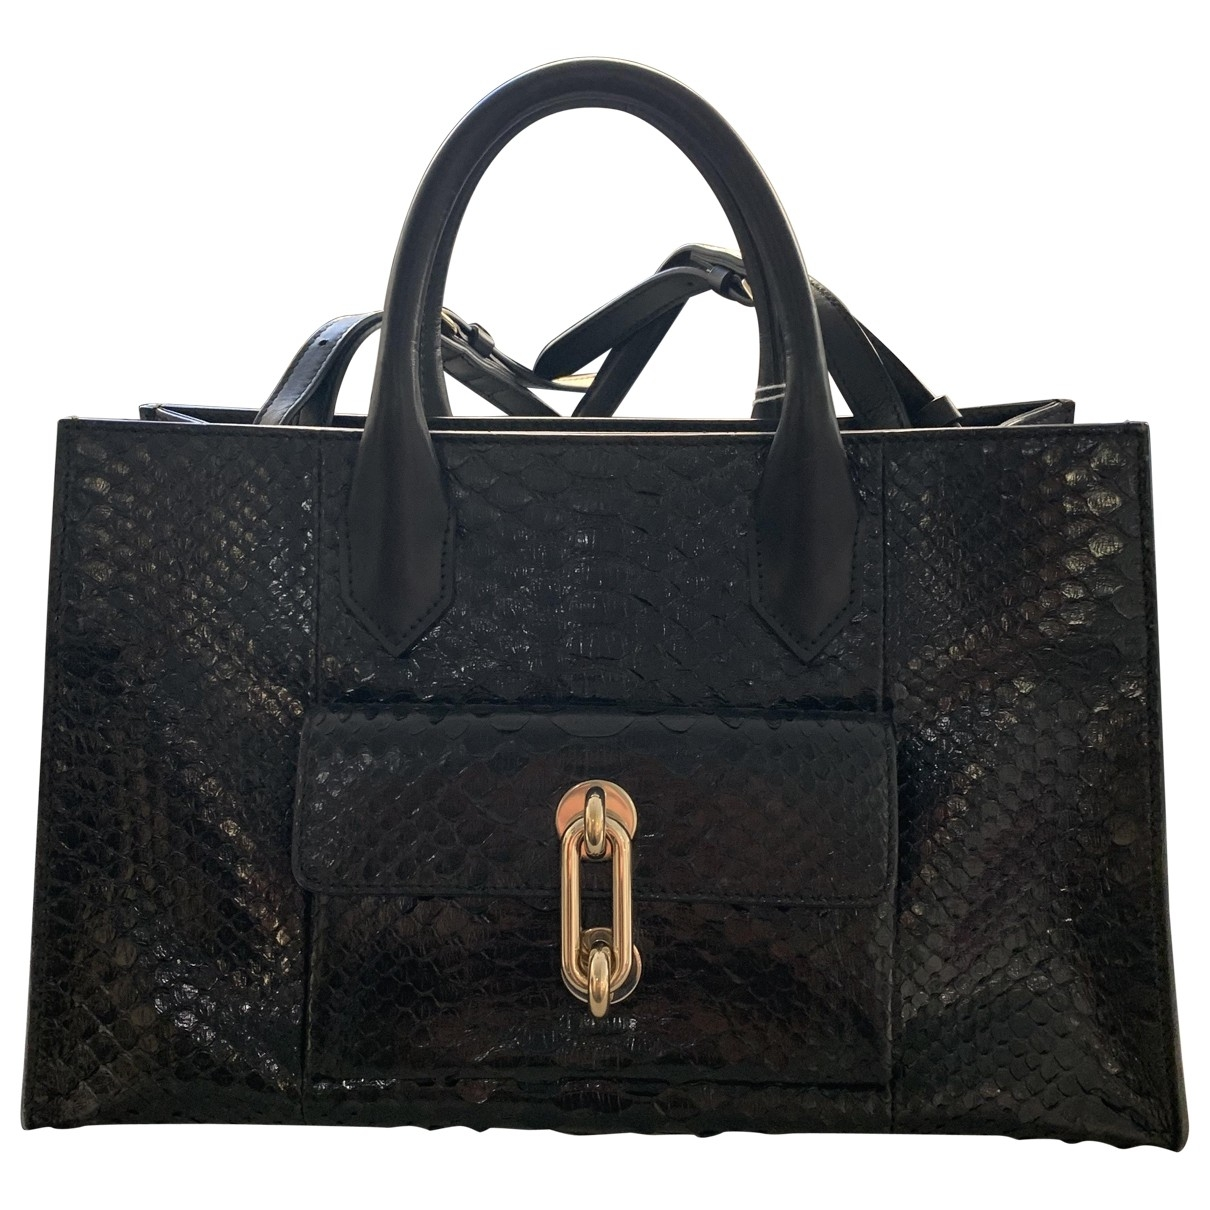 Balenciaga Padlock Black Leather handbag for Women \N